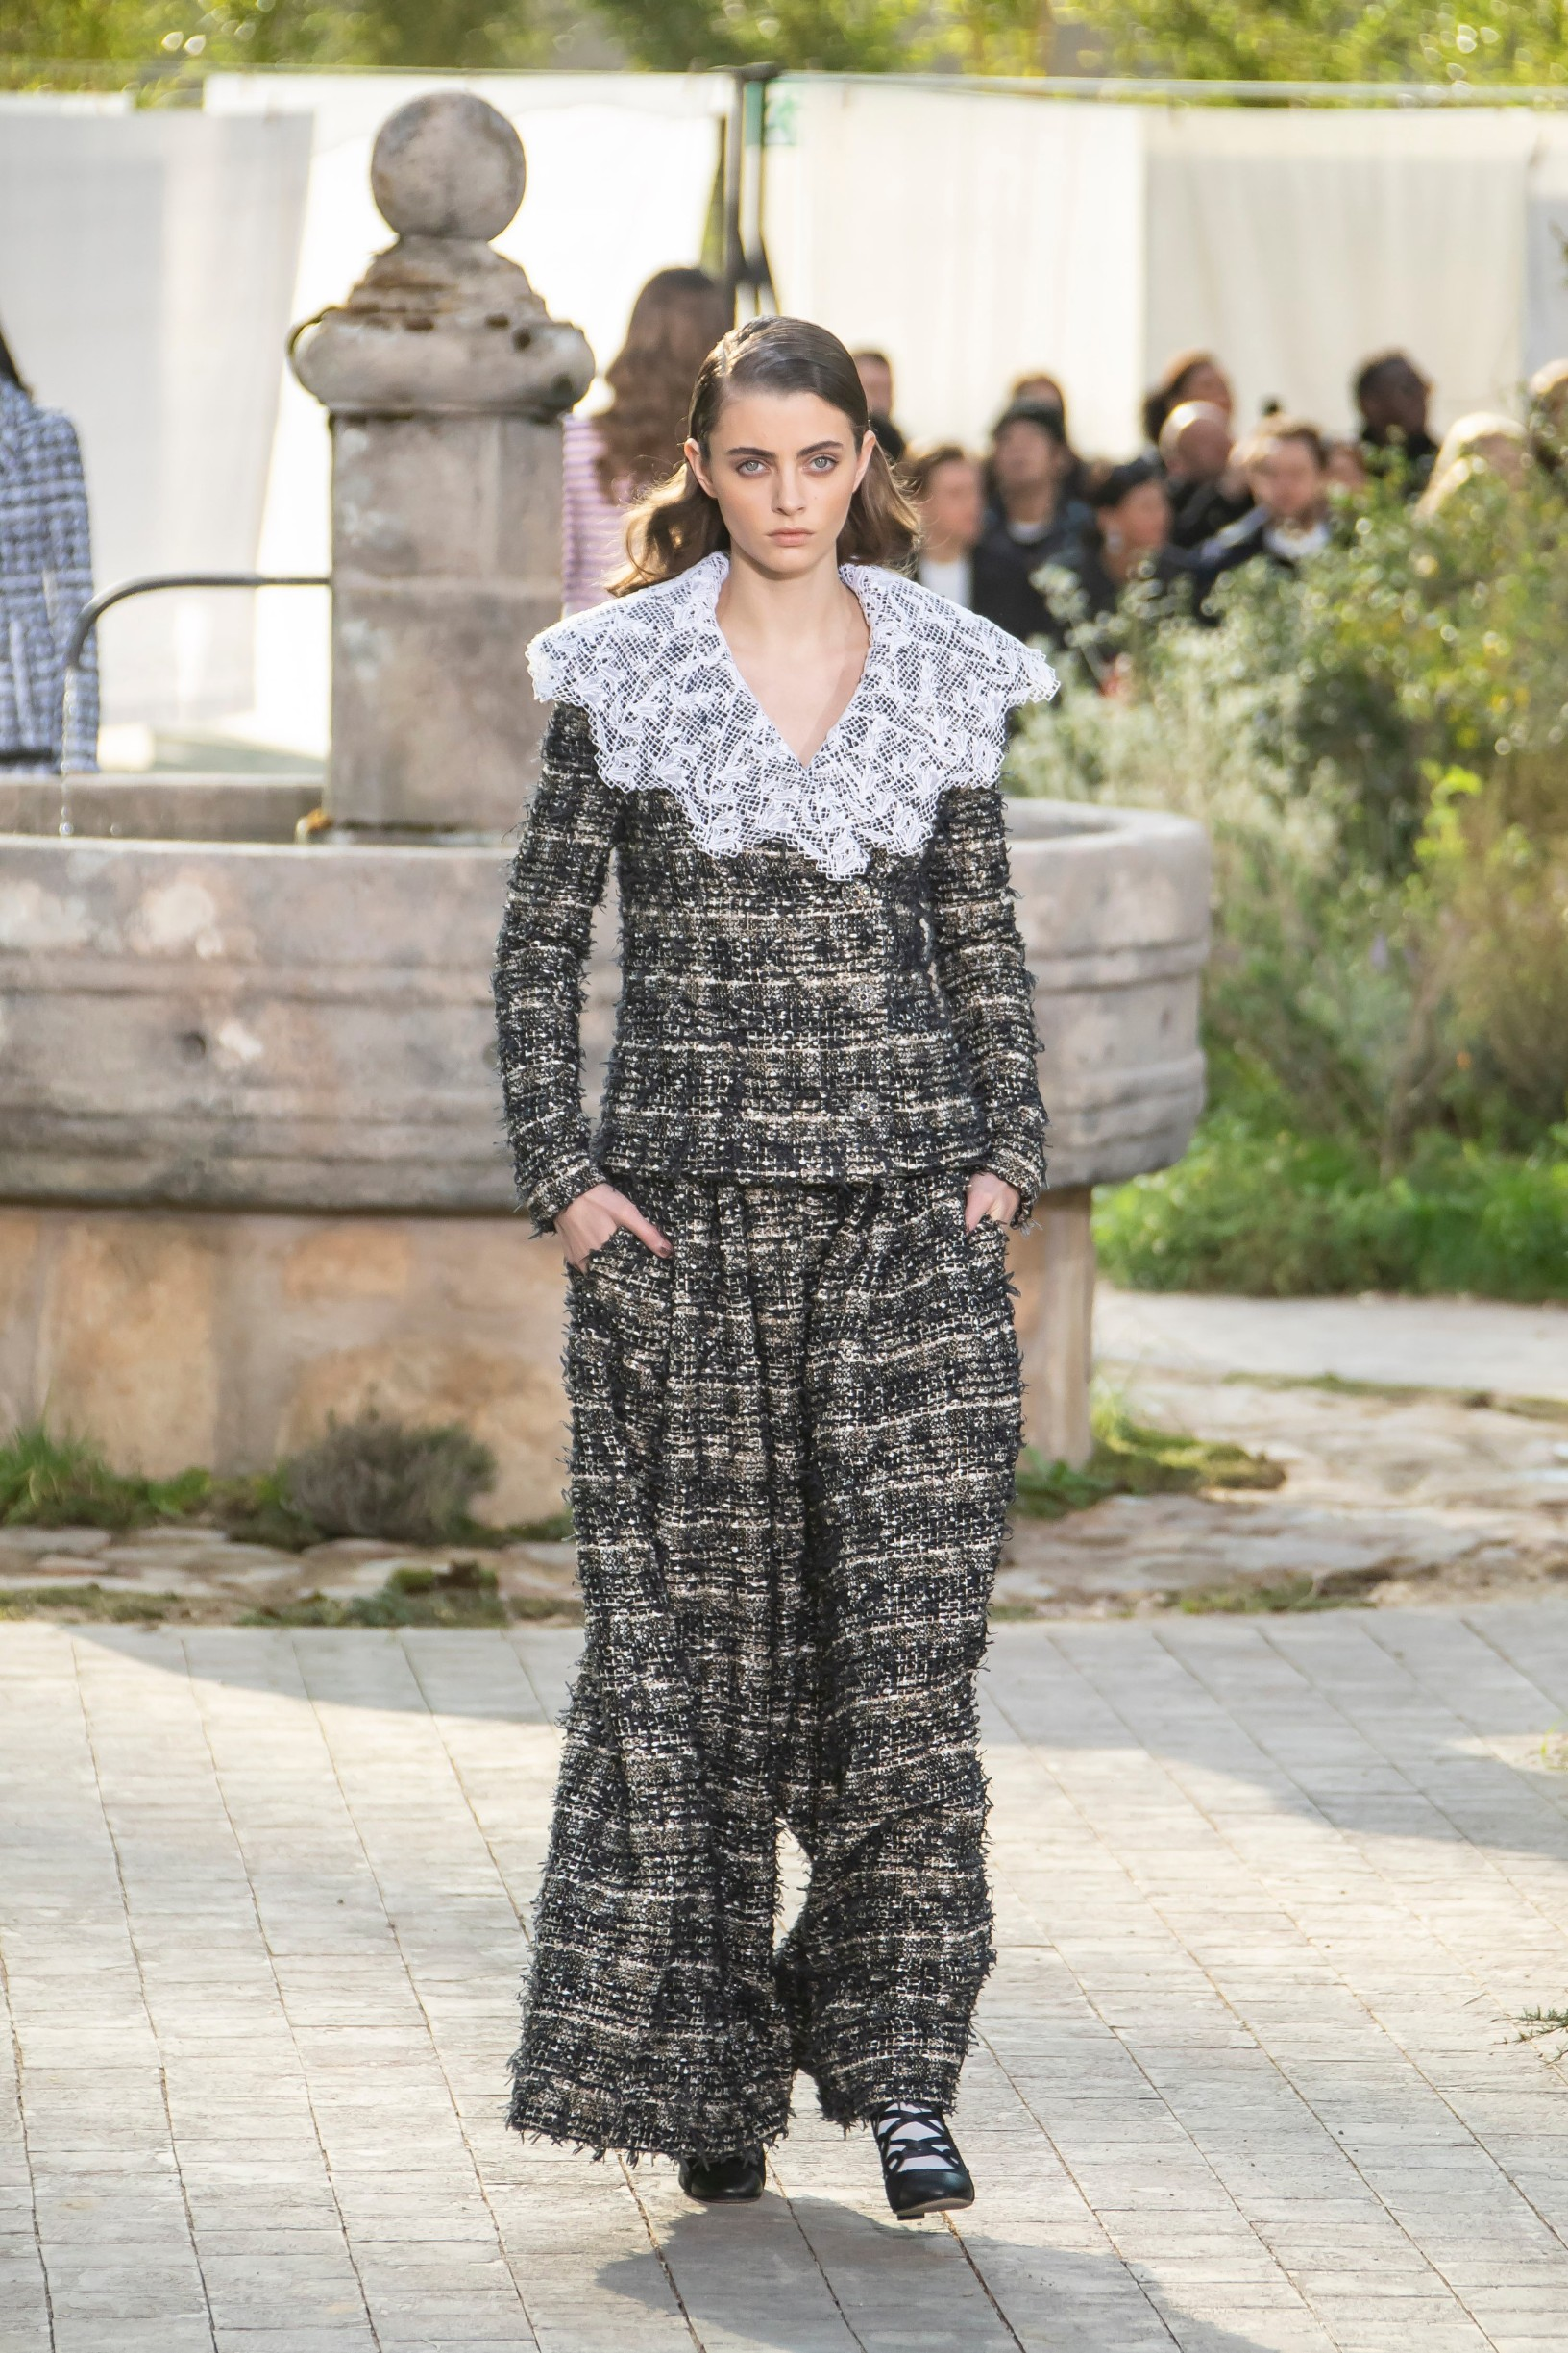 Model walks the runway during the Chanel Haute Couture Spring/Summer 2020 show as part of Paris Fashion Week on January 21, 2020 in Paris, France., Image: 494116595, License: Rights-managed, Restrictions: , Model Release: no, Credit line: Sebastien Courdji / KCS Presse / Profimedia